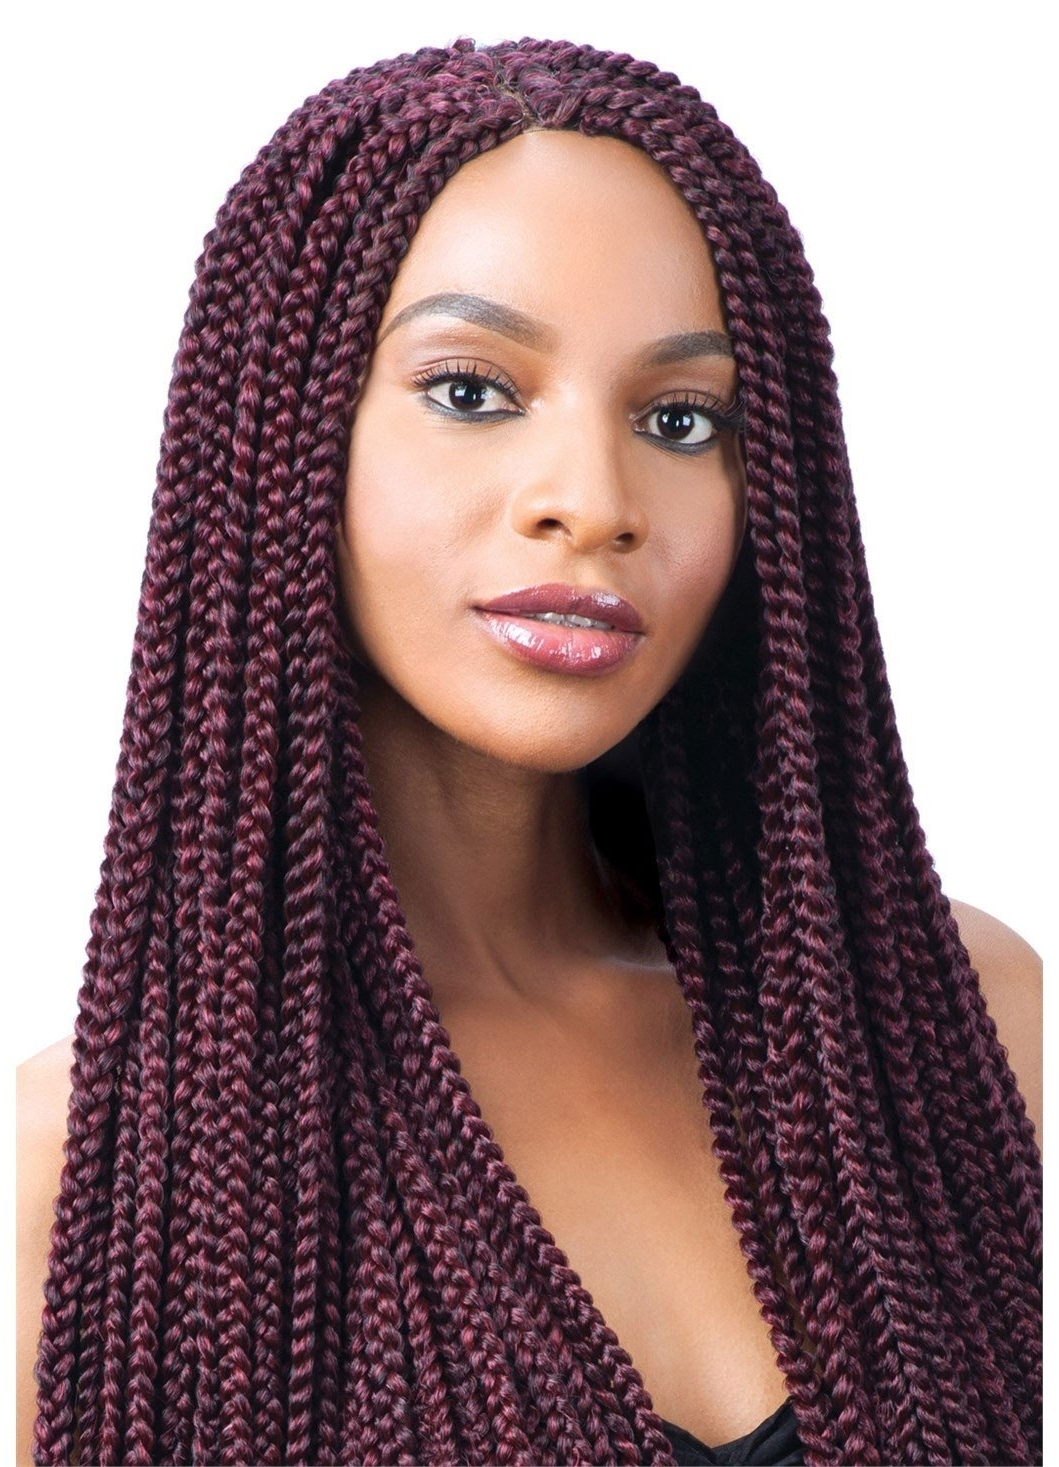 Best Braids For Afro Hair, Top Afro Hairdressers, Edmonton With Famous Long Braids For Black Hair (View 4 of 15)